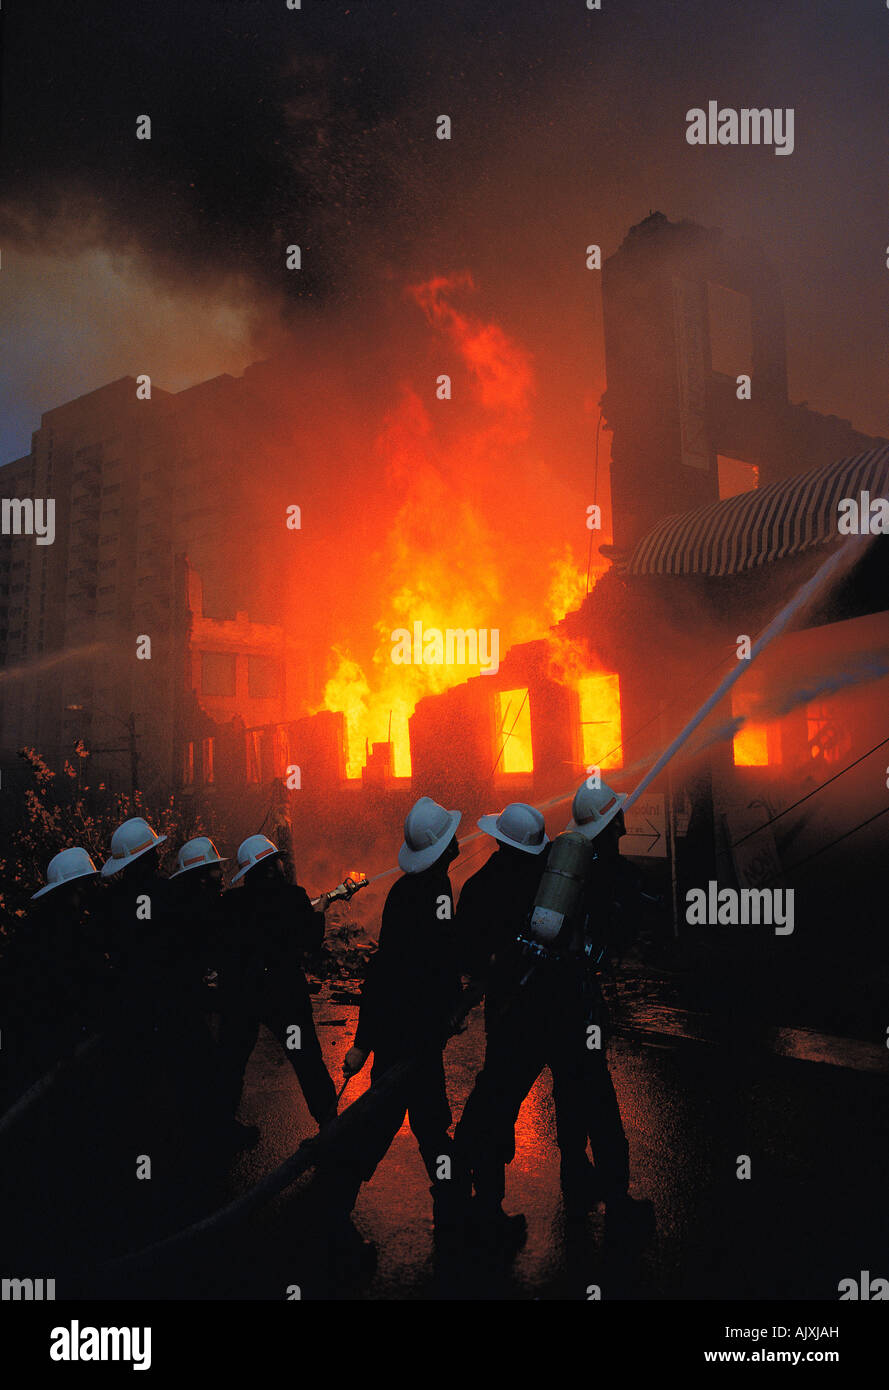 Accident & disaster. Fire fighters fighting intense fire in factory building. - Stock Image